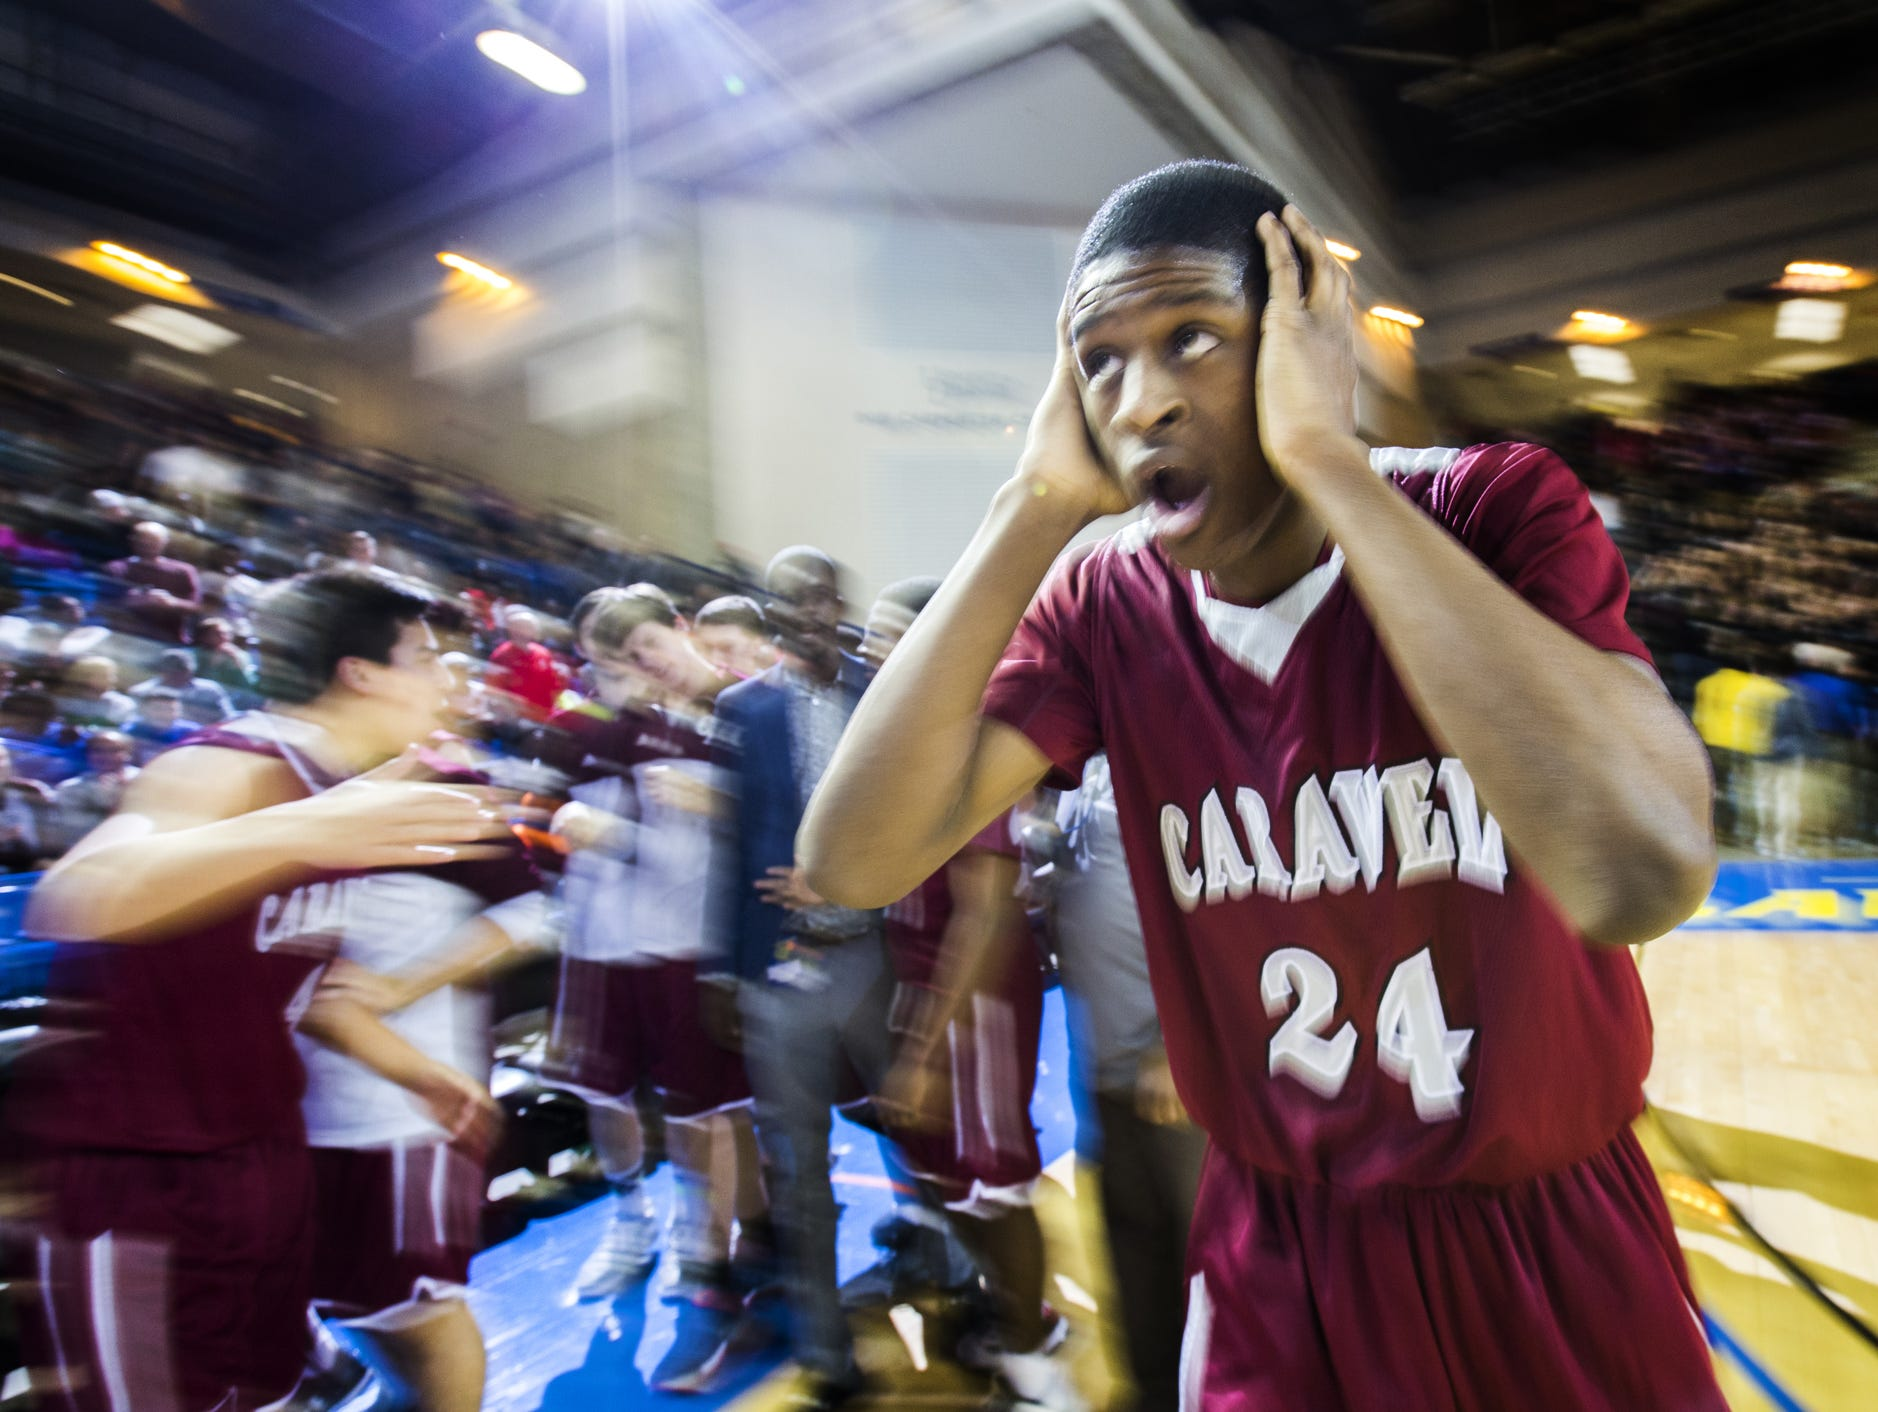 Caravel's O'Koye Parker reacts as his teammates celebrate the Bucs' 48-47 semifinal win over St. Thomas More in the DIAA Boys Basketball Tournament on Thursday. Parker hit the winning free throw with 2.4 seconds remaining.